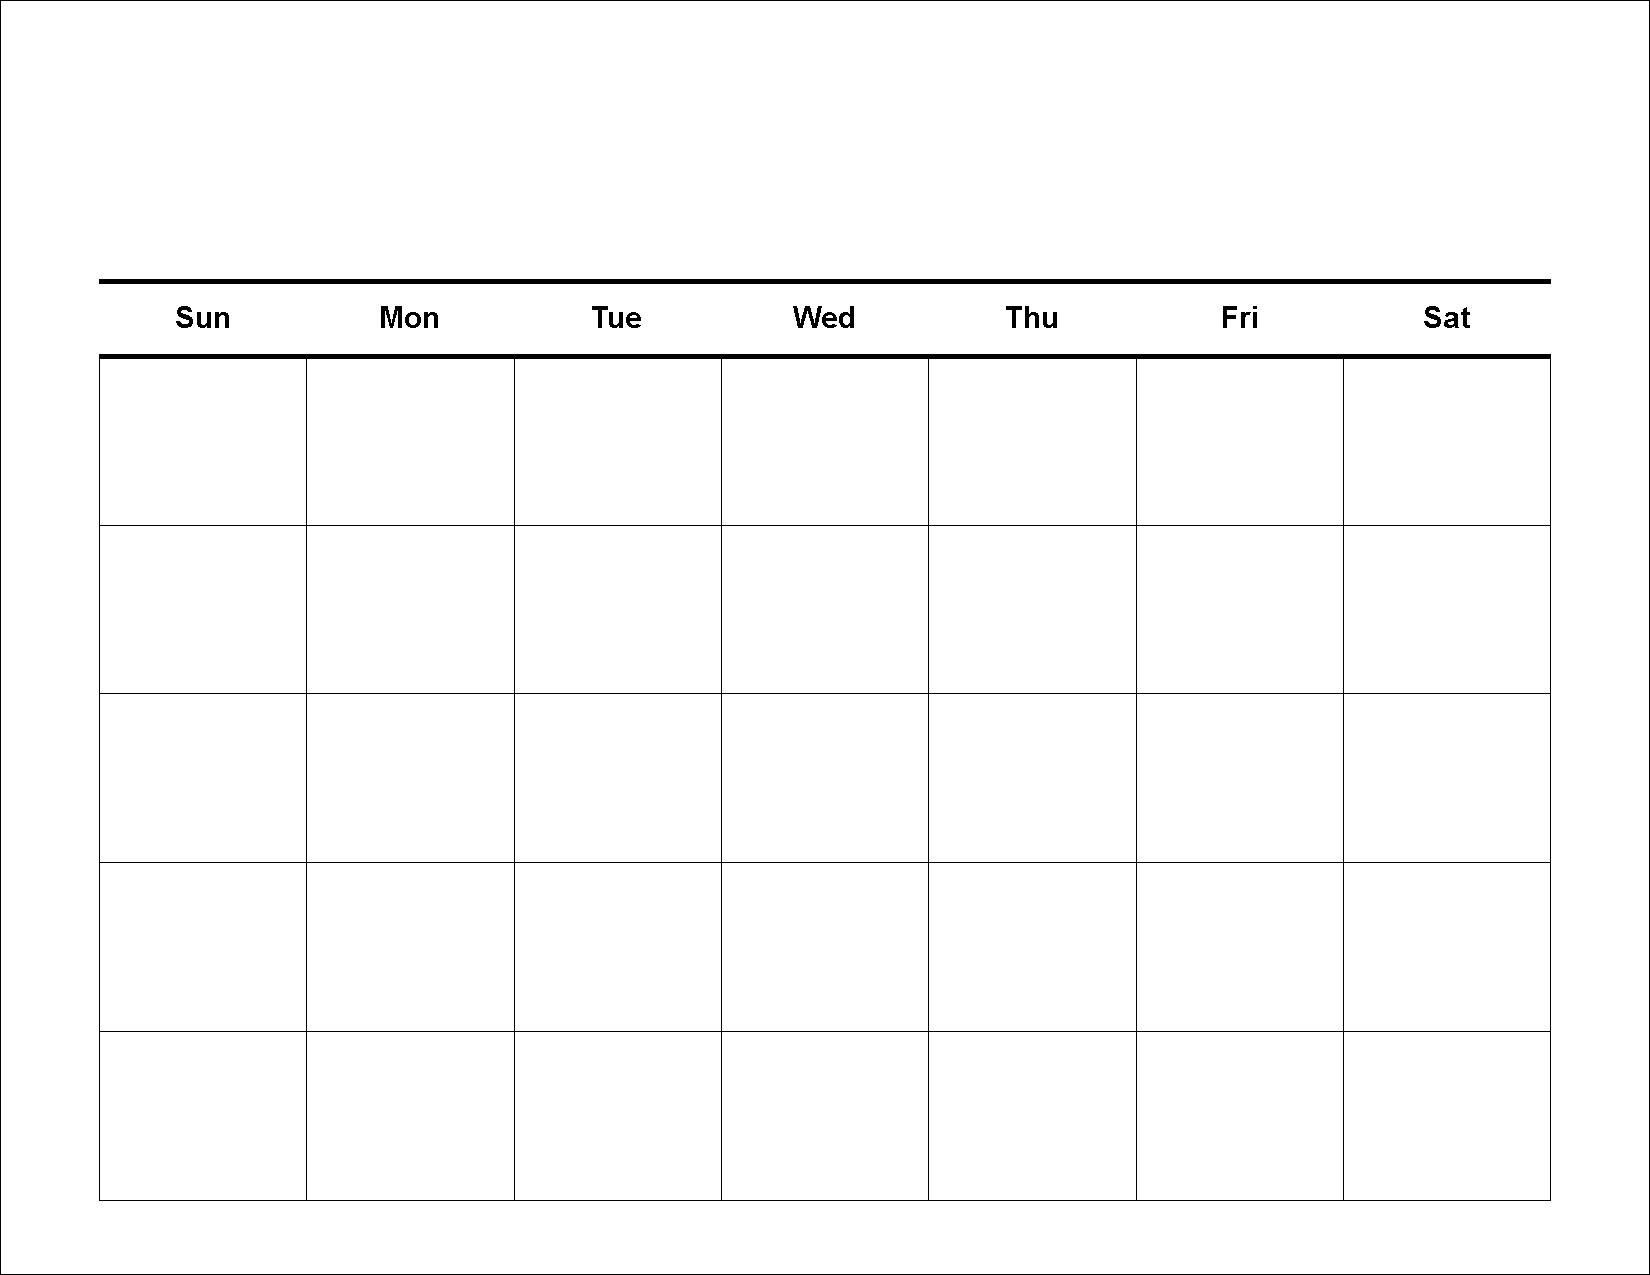 Free 5 Day Calendar Template | Printable Calendar Templates 2019 with regard to Free 30 Day Calendar Printable